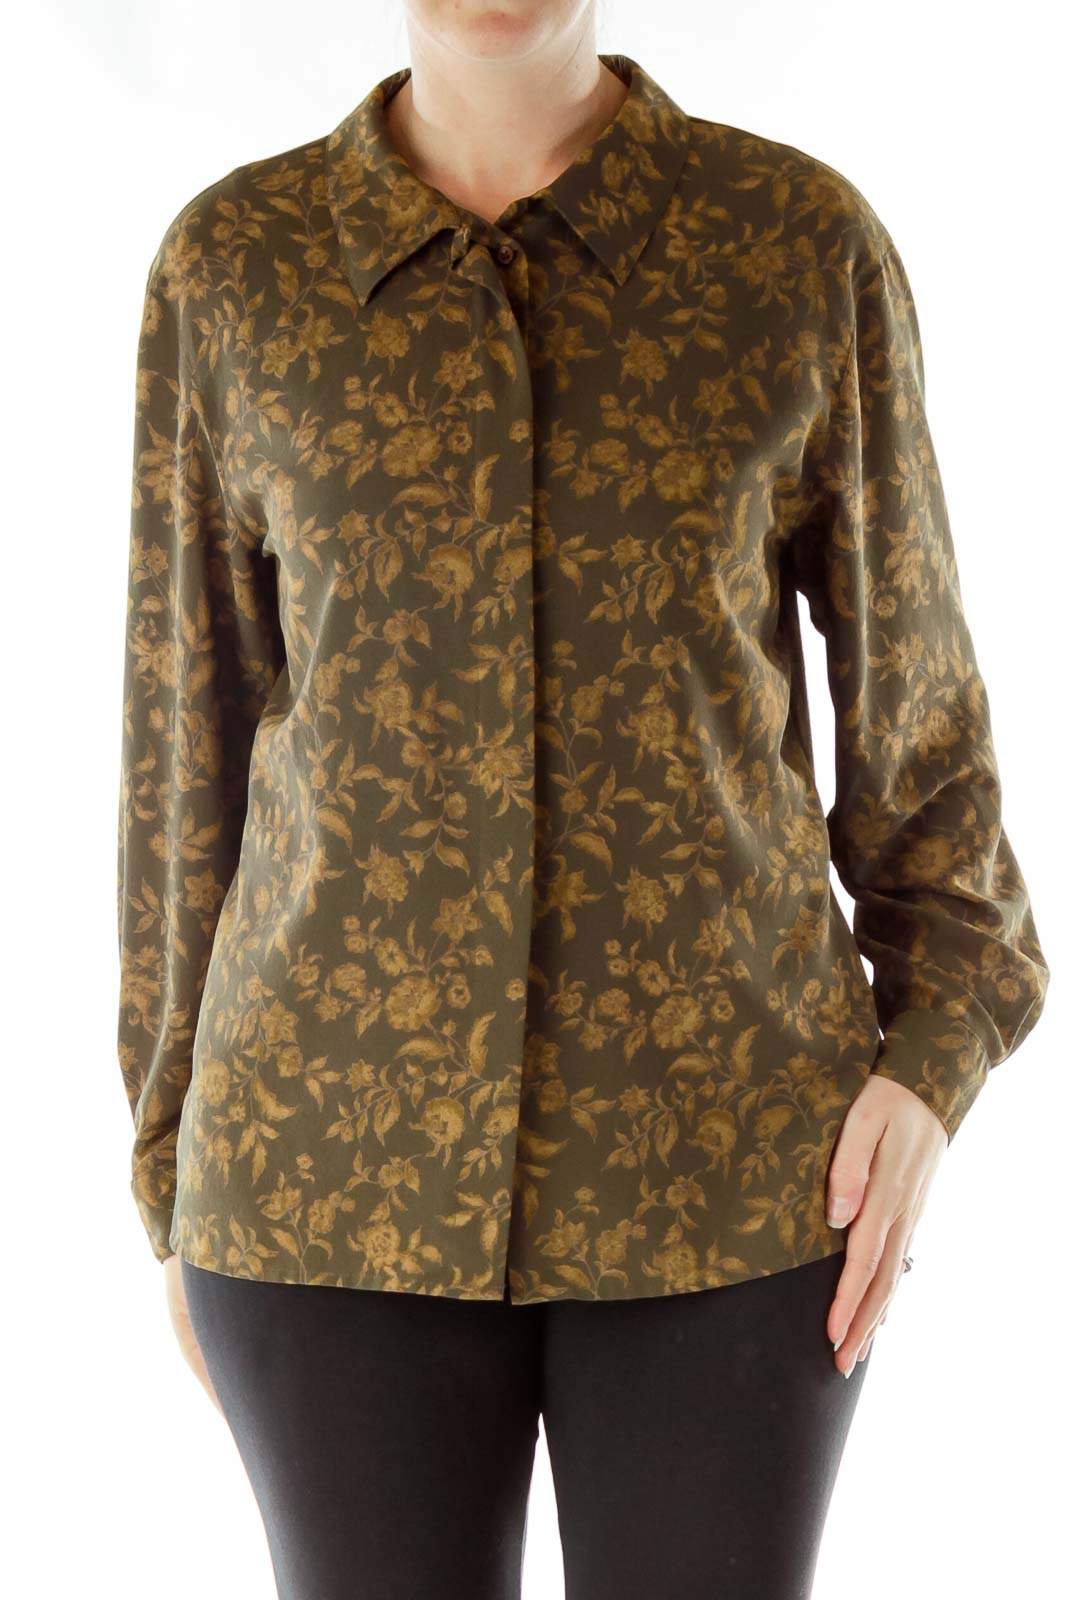 Green Gold Floral Print Blouse